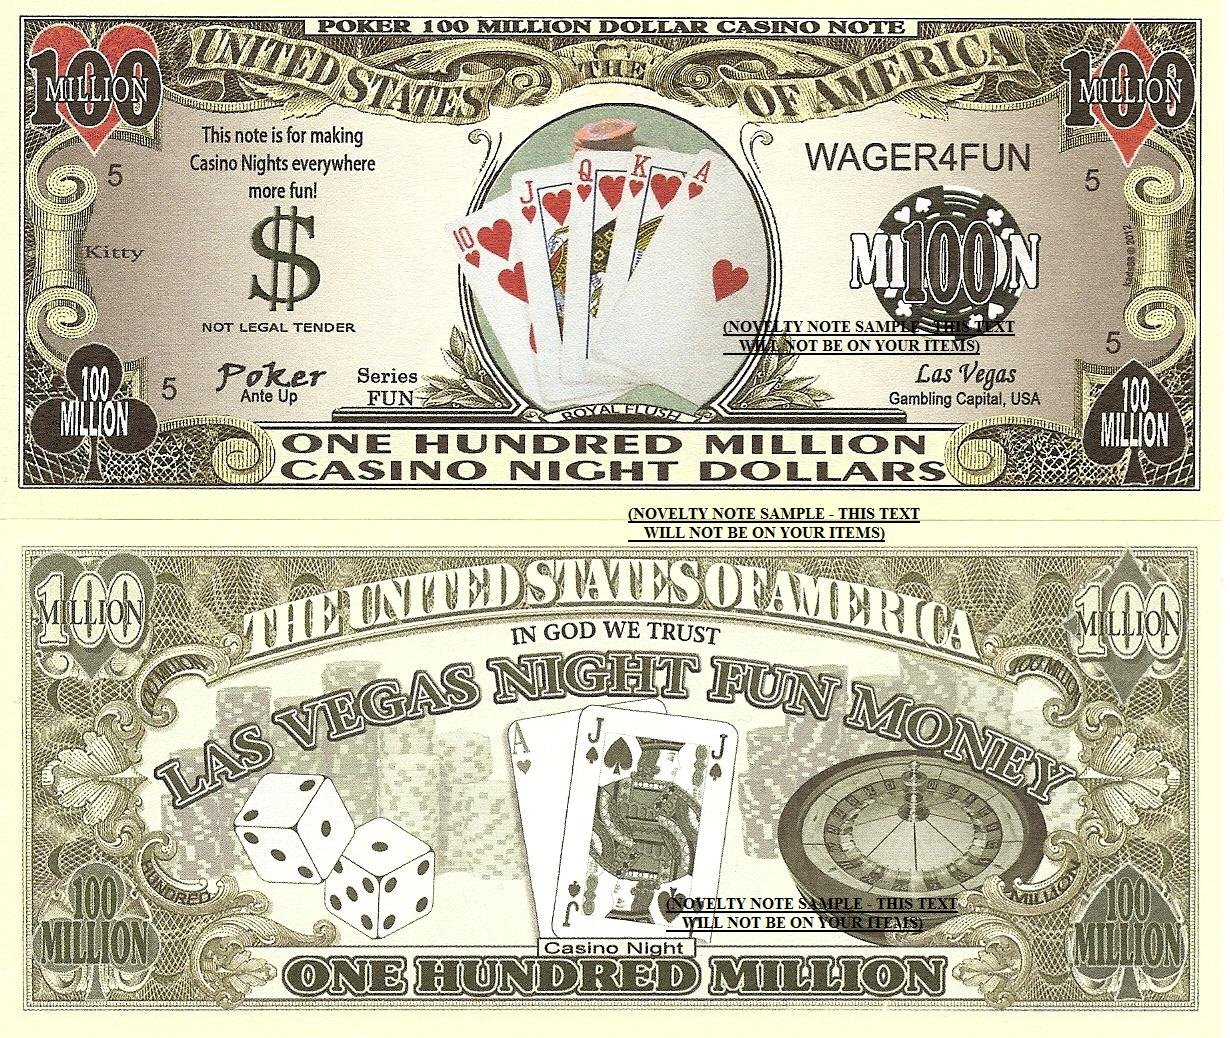 Poker 100 Million Casino Night Dollar Bills x 4 Las Vegas Fun Money Royal Flush